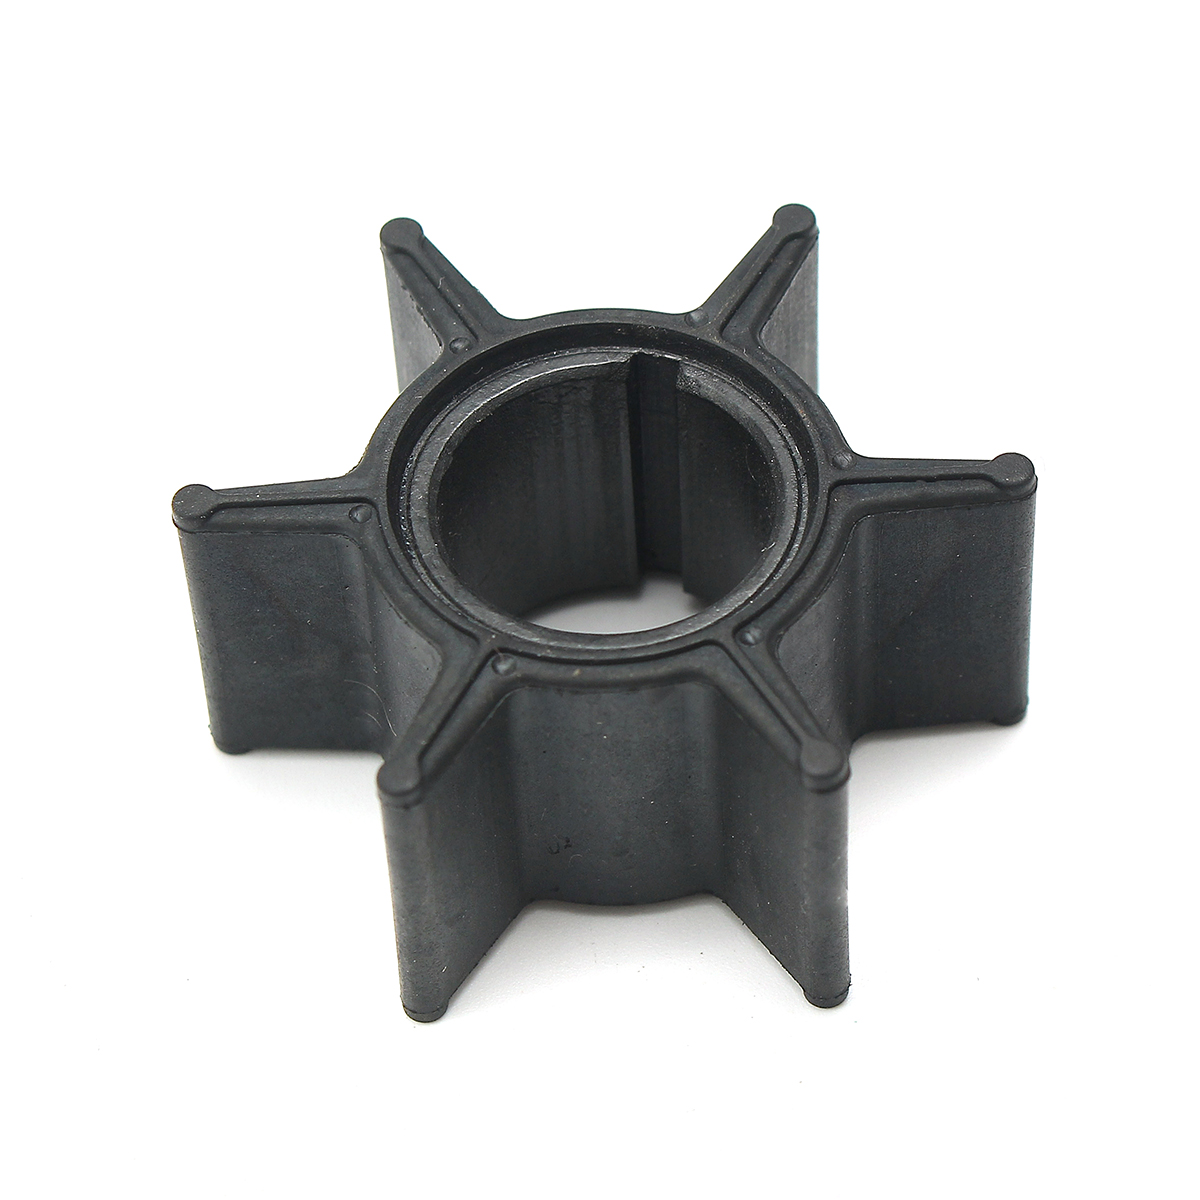 25//30//40hp 345-65021-0 18-8923 New water pump impeller for  Tohatsu Nissan